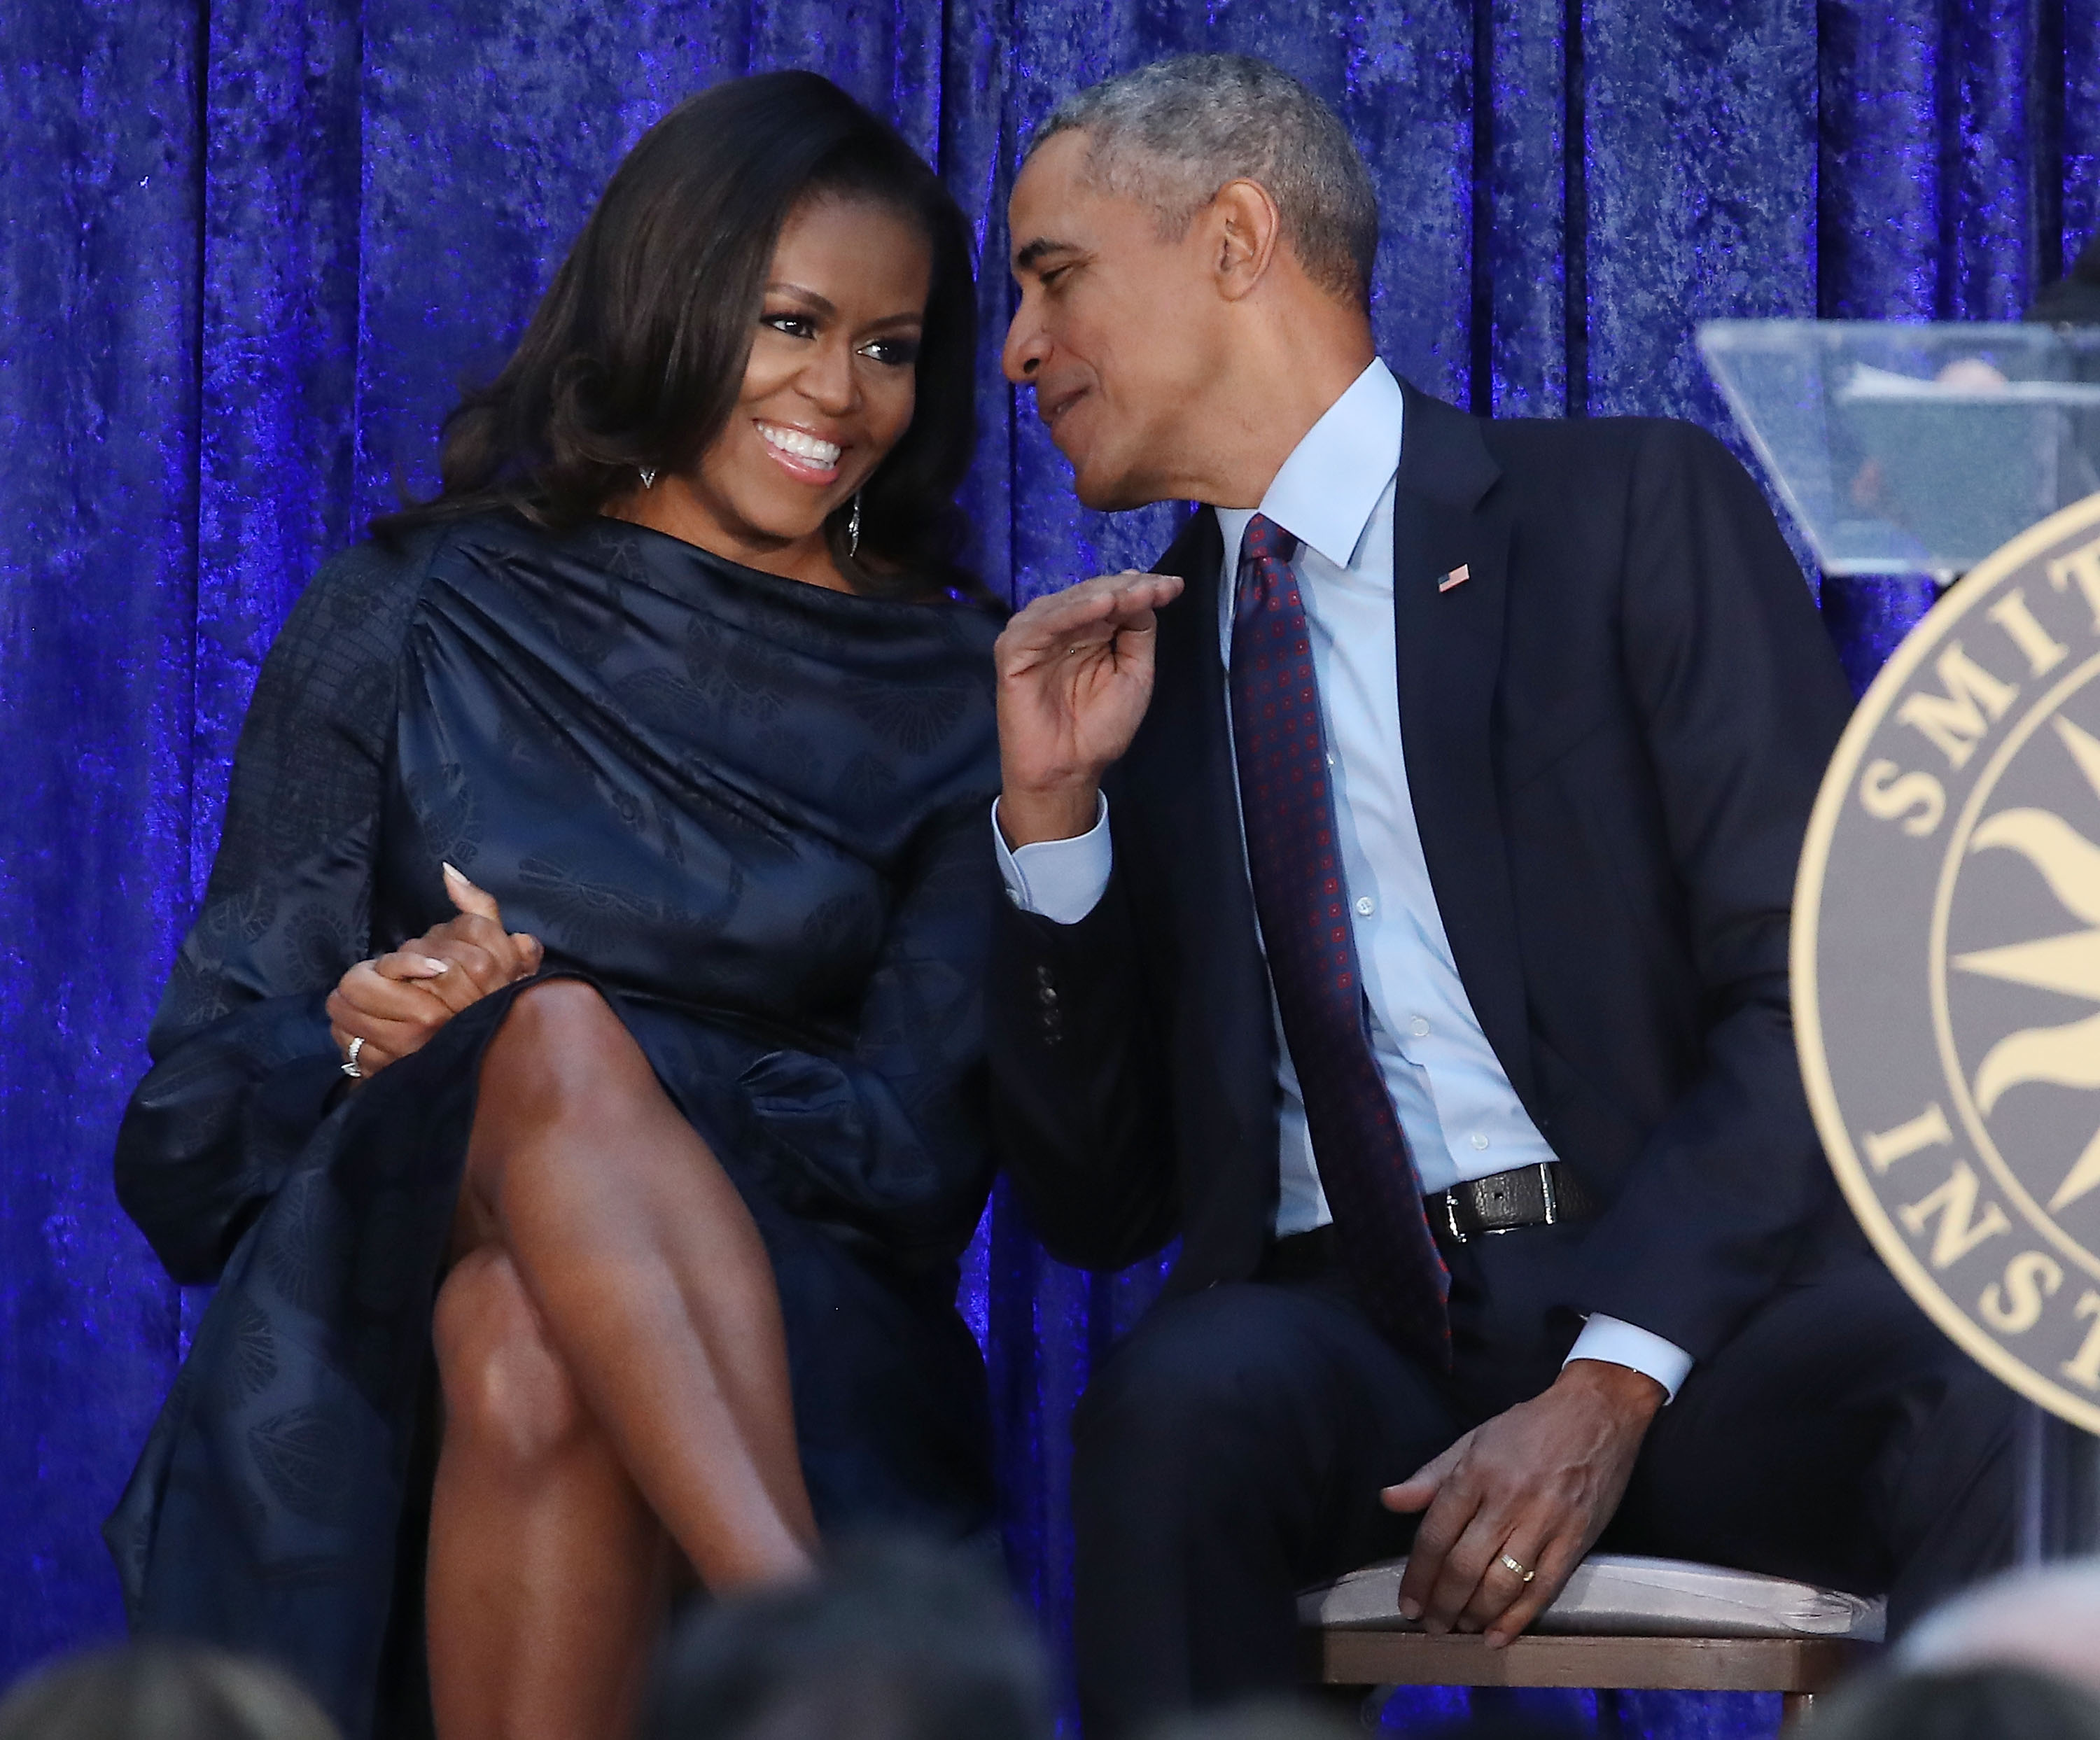 Former U.S. President Barack Obama and first lady Michelle Obama participate in the unveiling of their official portraits during a ceremony at the Smithsonian's National Portrait Gallery, on February 12, 2018, in Washington, DC. (Getty Images)